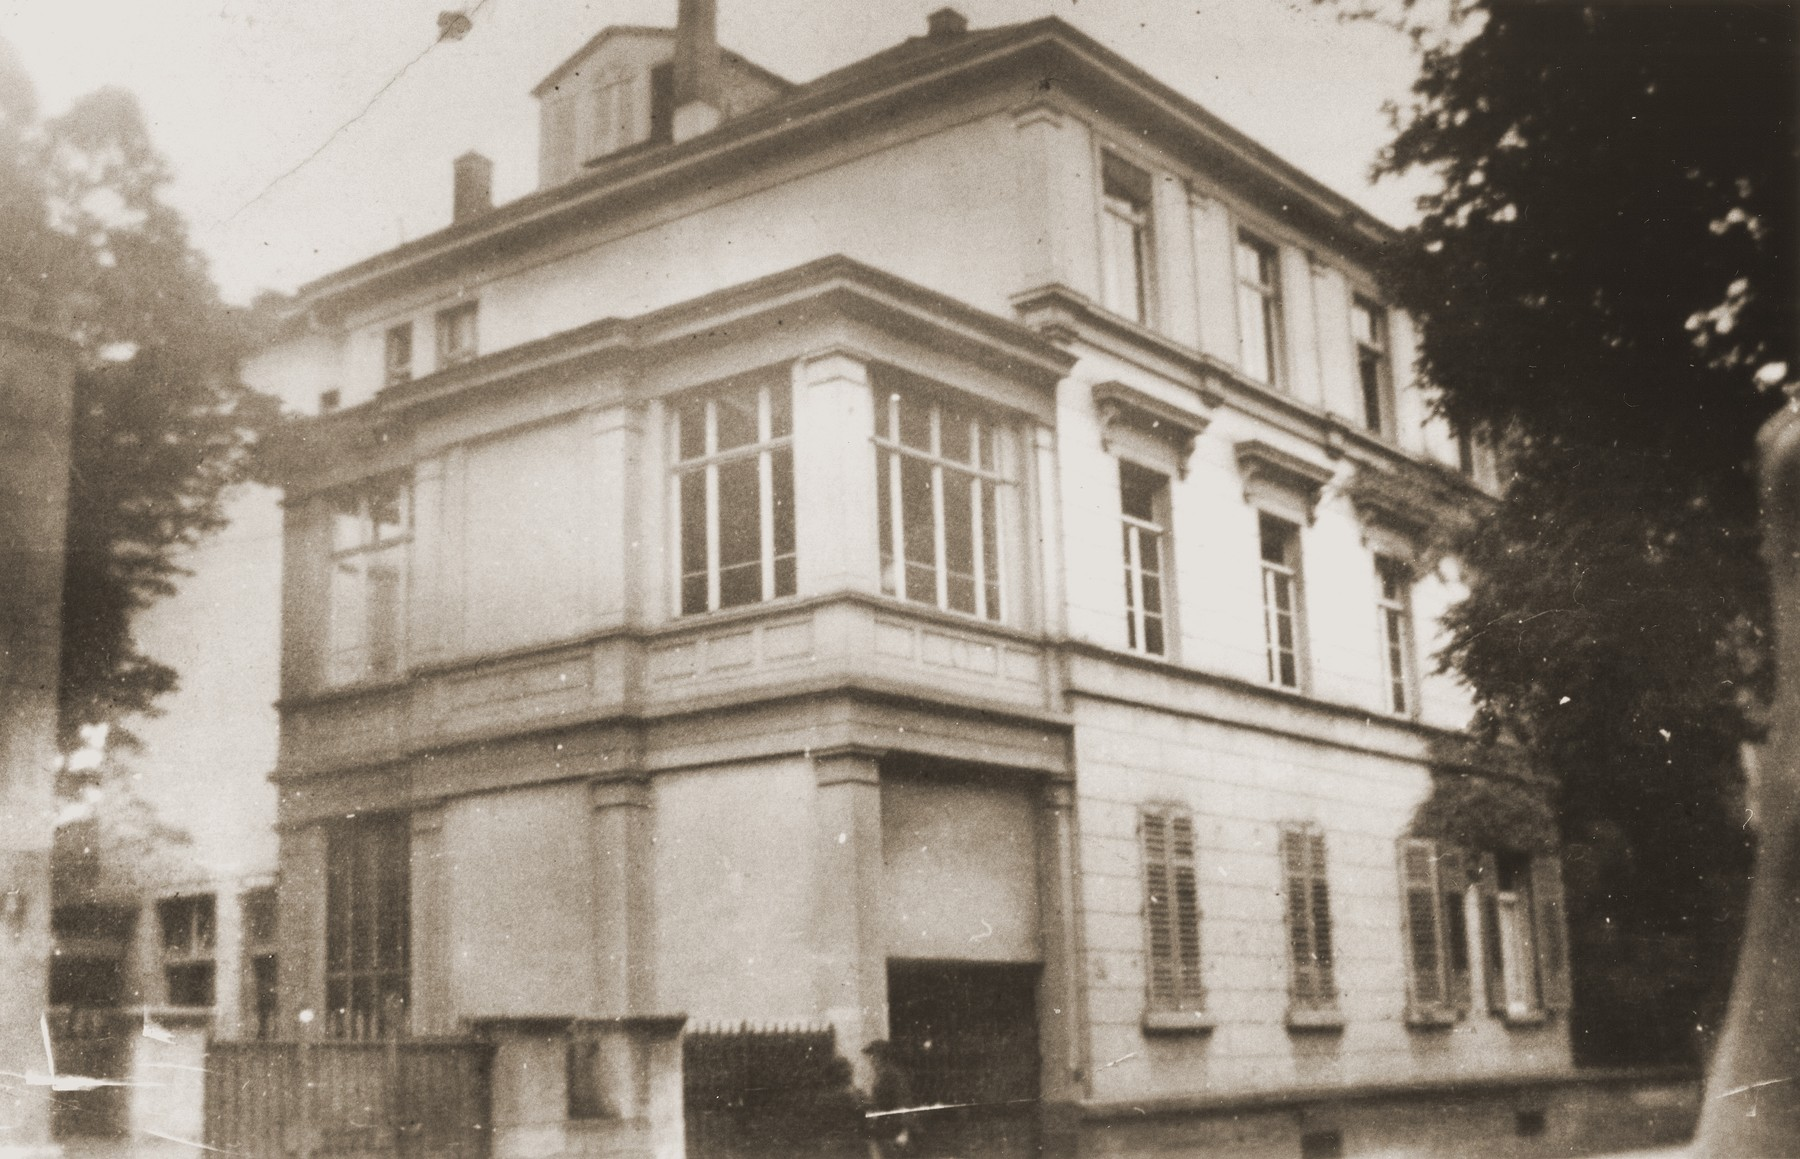 View of the Breuer yeshiva in Frankfurt am Main.    The yeshiva was headed by Rabbi Doctor Joseph Breuer.  After Kristallnacht, the yeshiva was closed down.  Rabbi Breuer moved to Fiume, Italy and from there to New York where he became rabbi of the mostly German Jewish congregation, Kehillat Jeshurun.